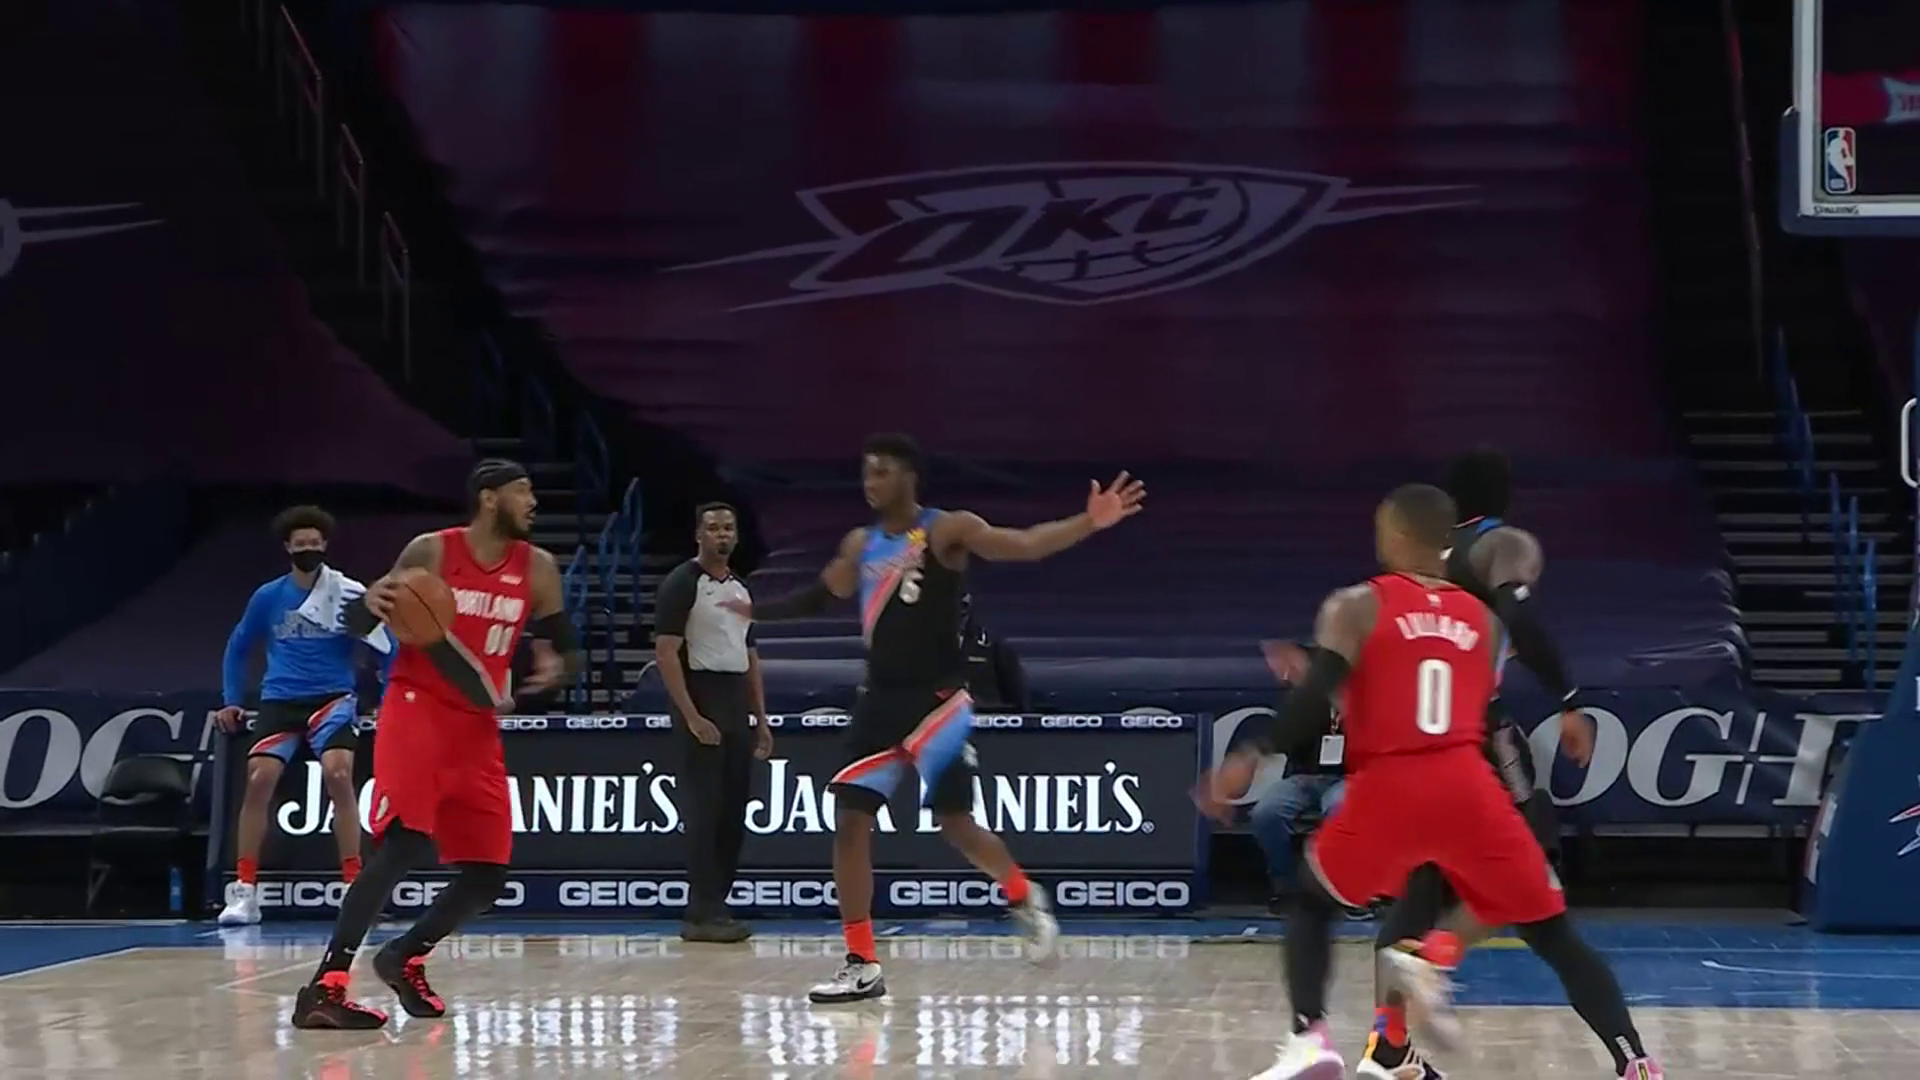 Damian Lillard hits multiple clutch threes in the closing minutes to seal the win